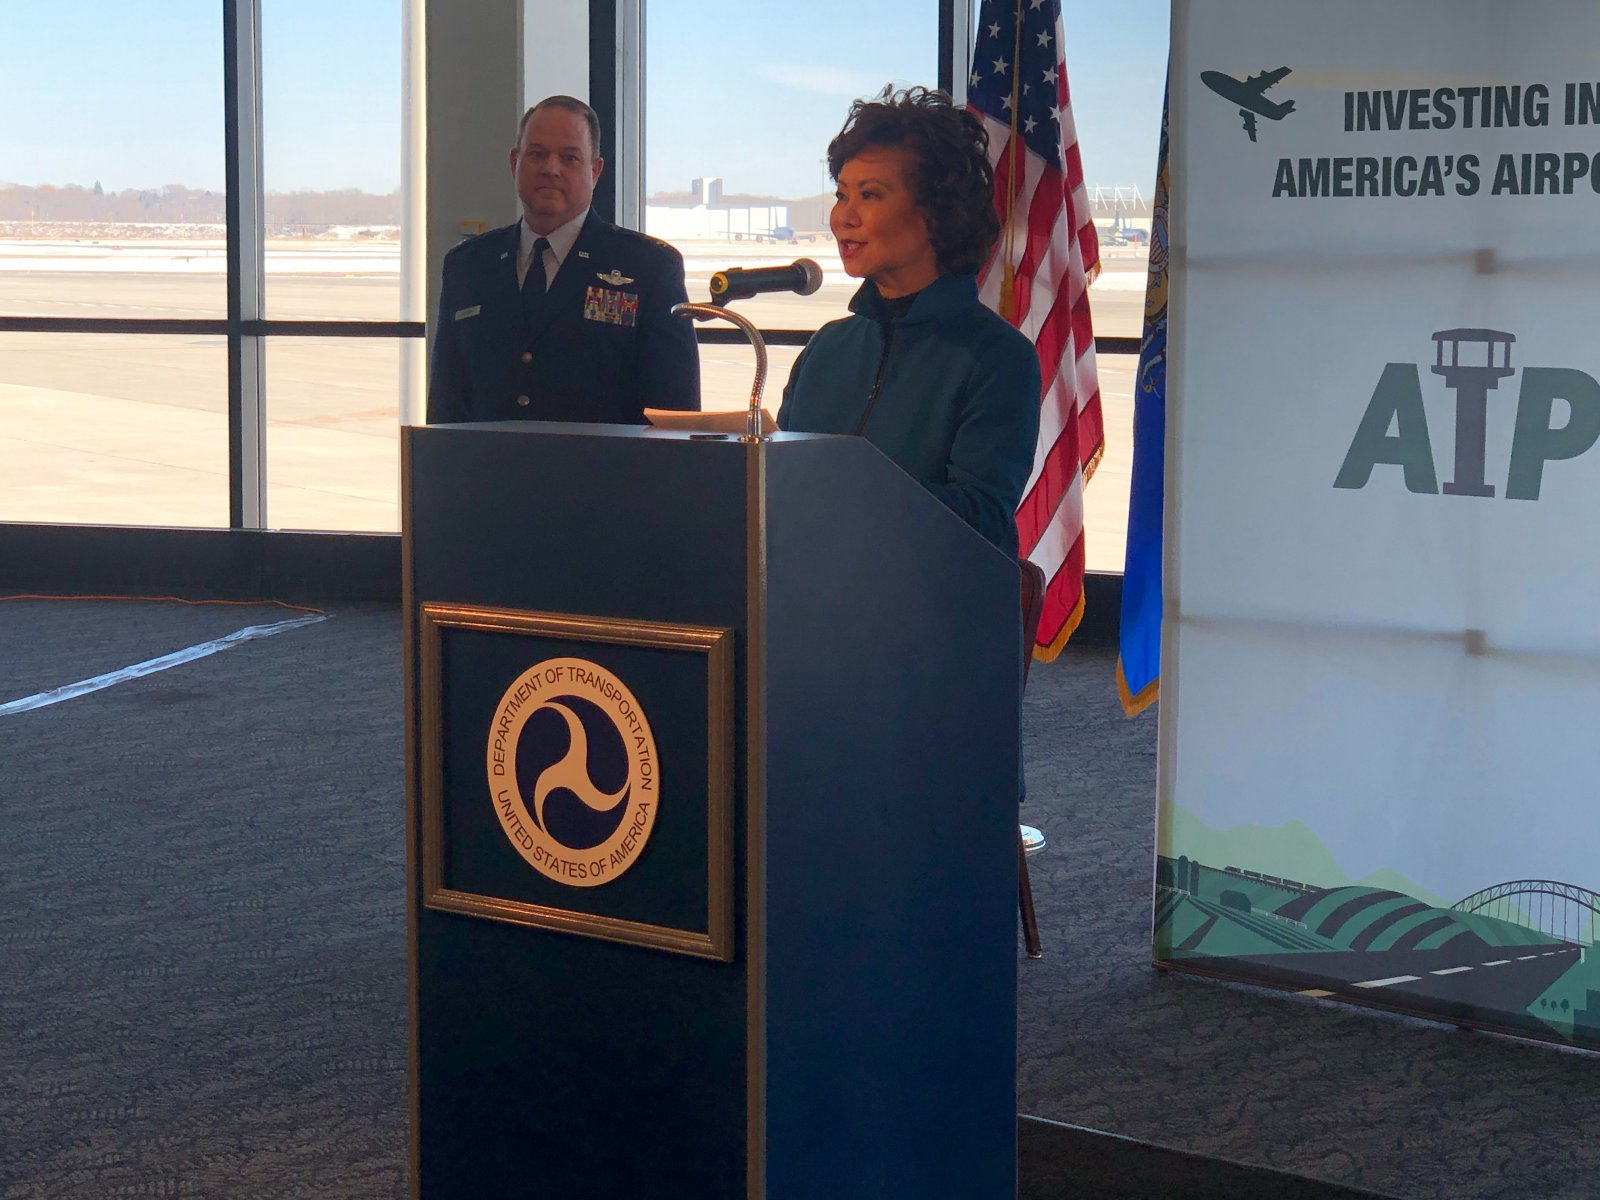 Colonel Shawn Gaffney and Elaine Chao